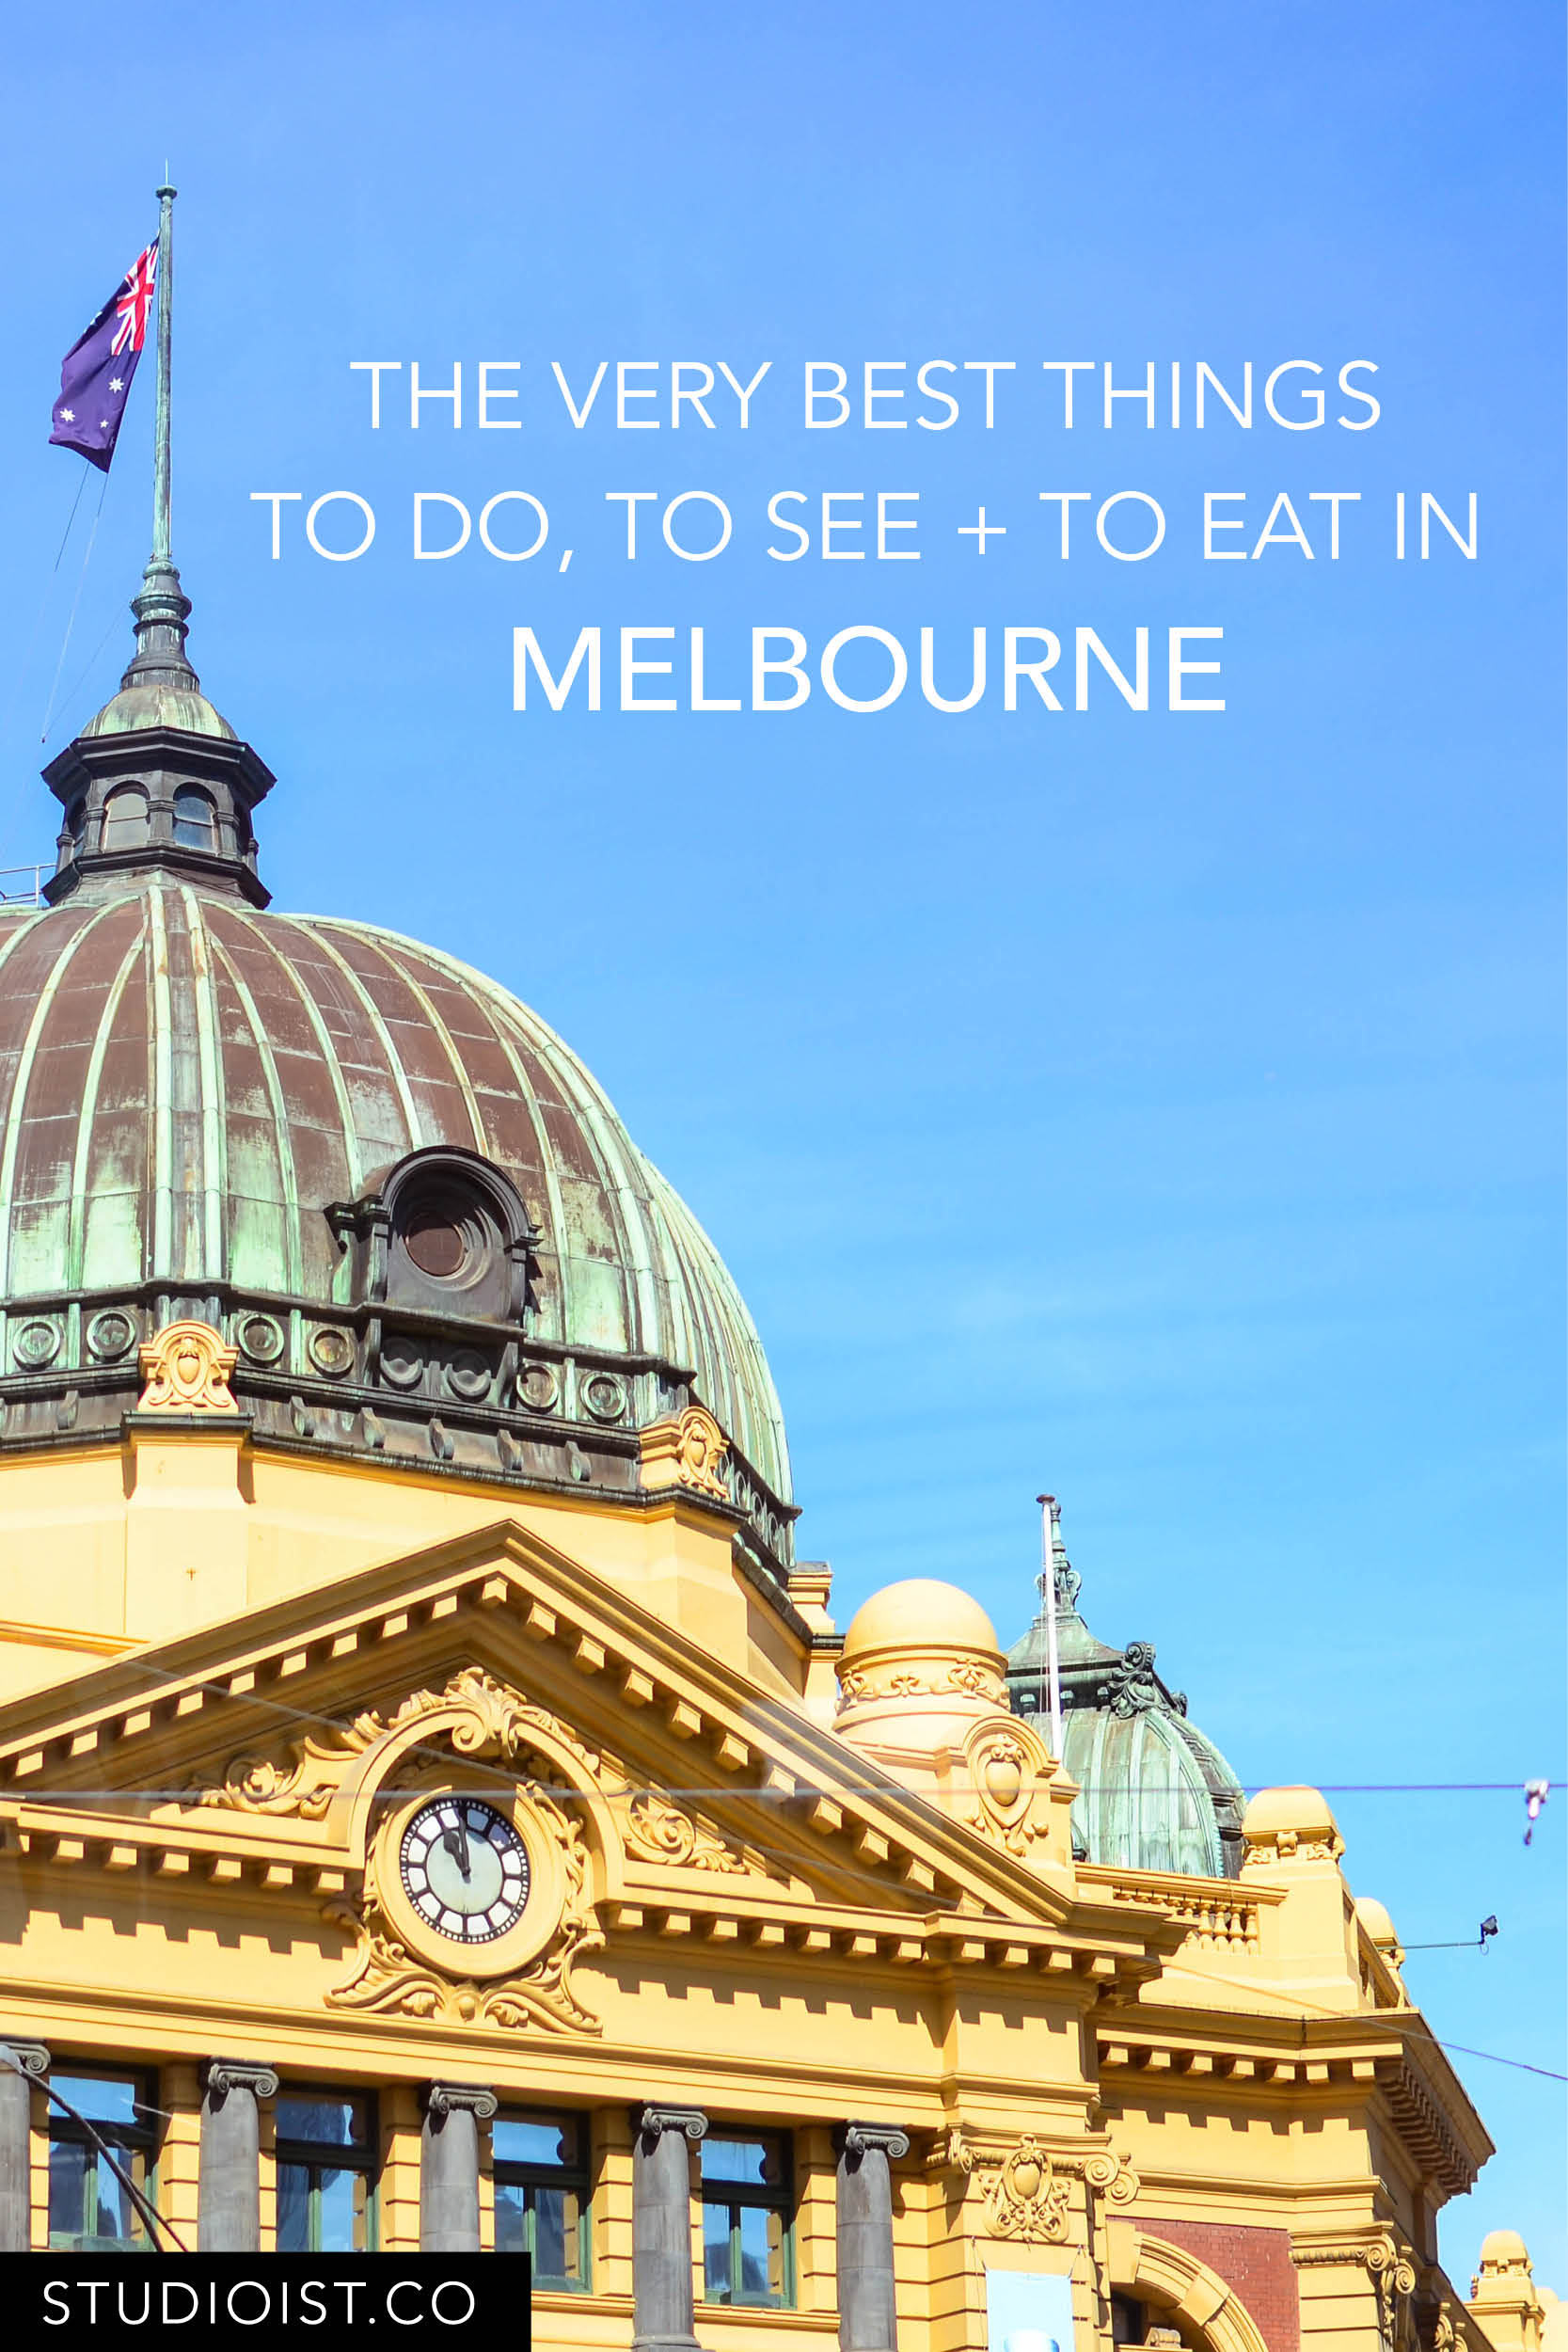 Studioist_Pinterest Design Travel_Melbourne Travel Guide3.jpg